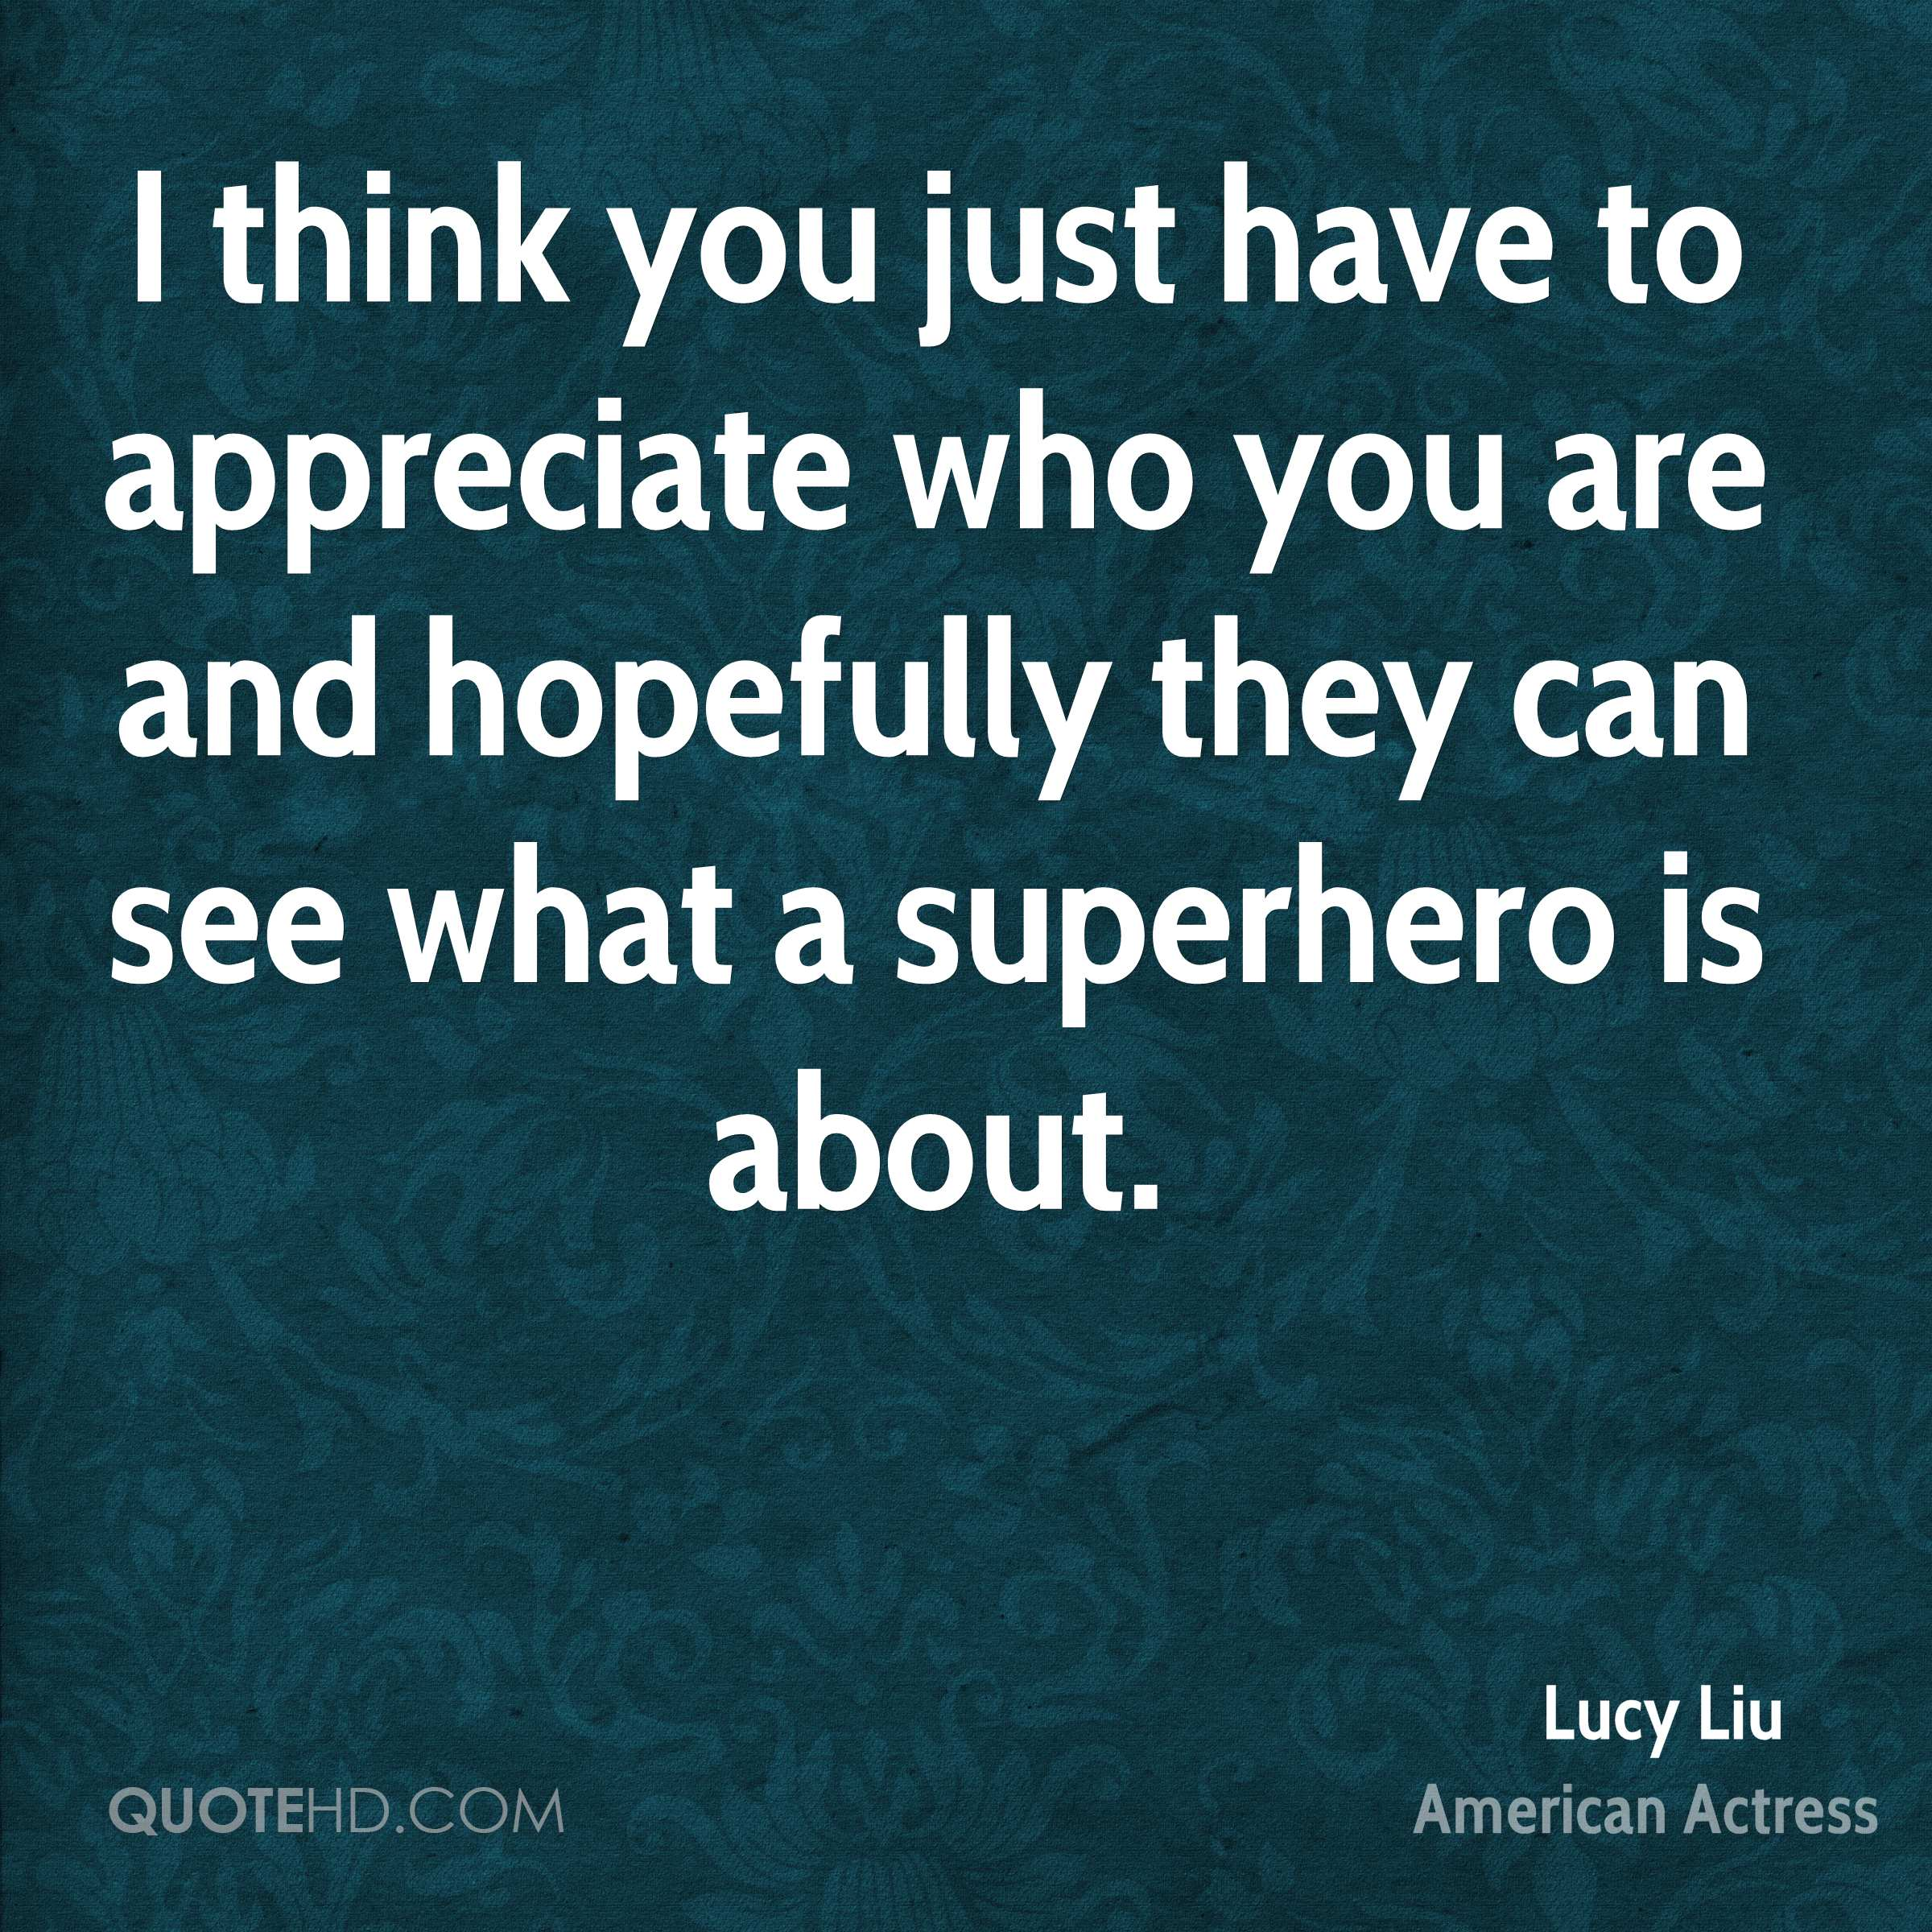 I think you just have to appreciate who you are and hopefully they can see what a superhero is about.